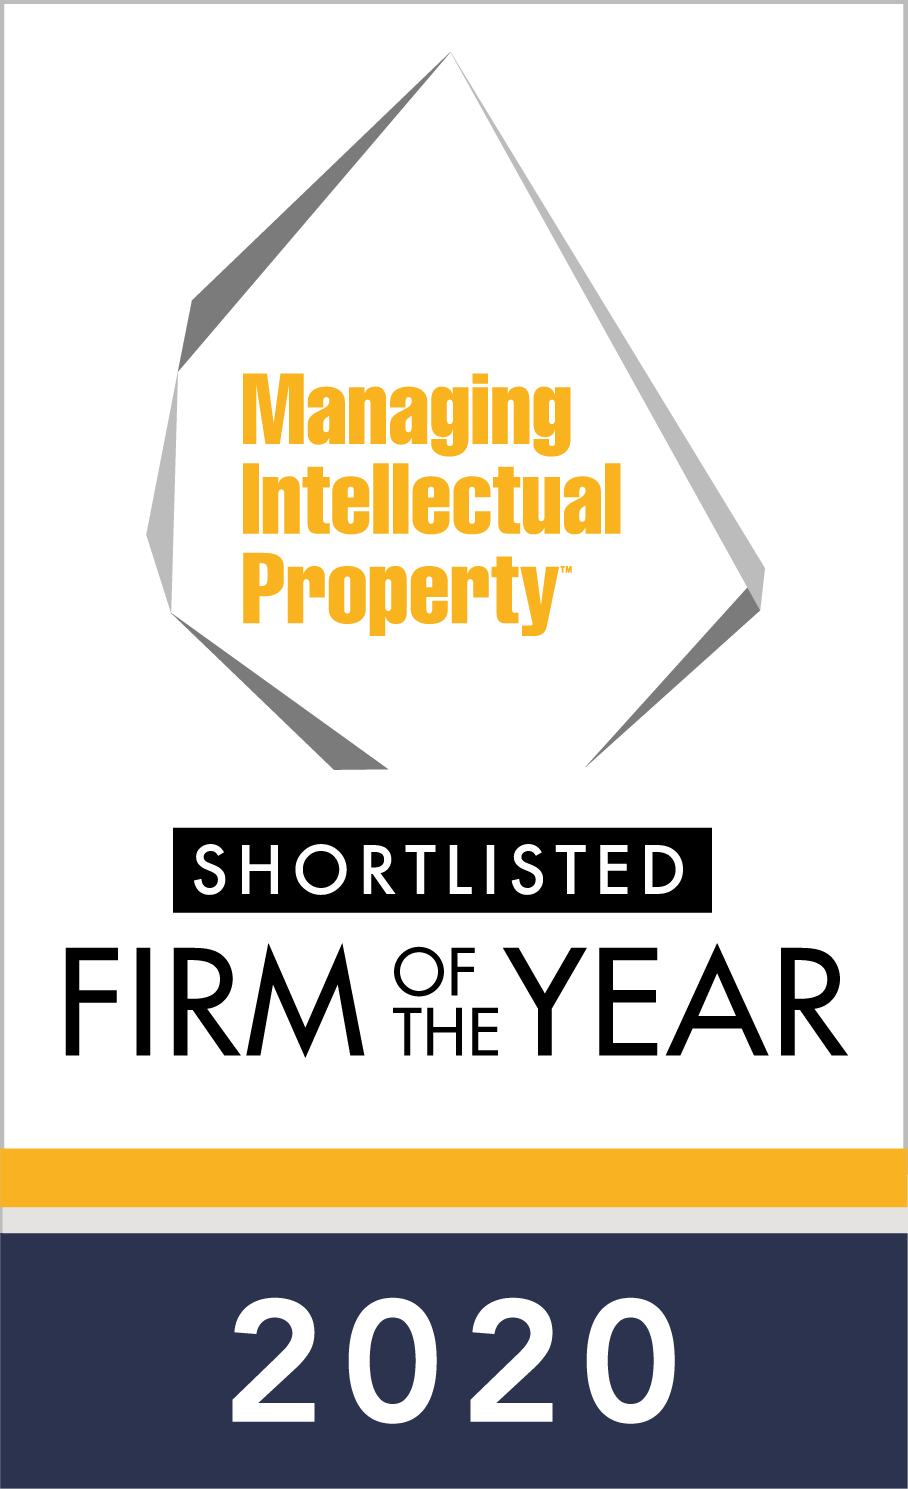 MIP Firm of the Year 2020 shortlisted